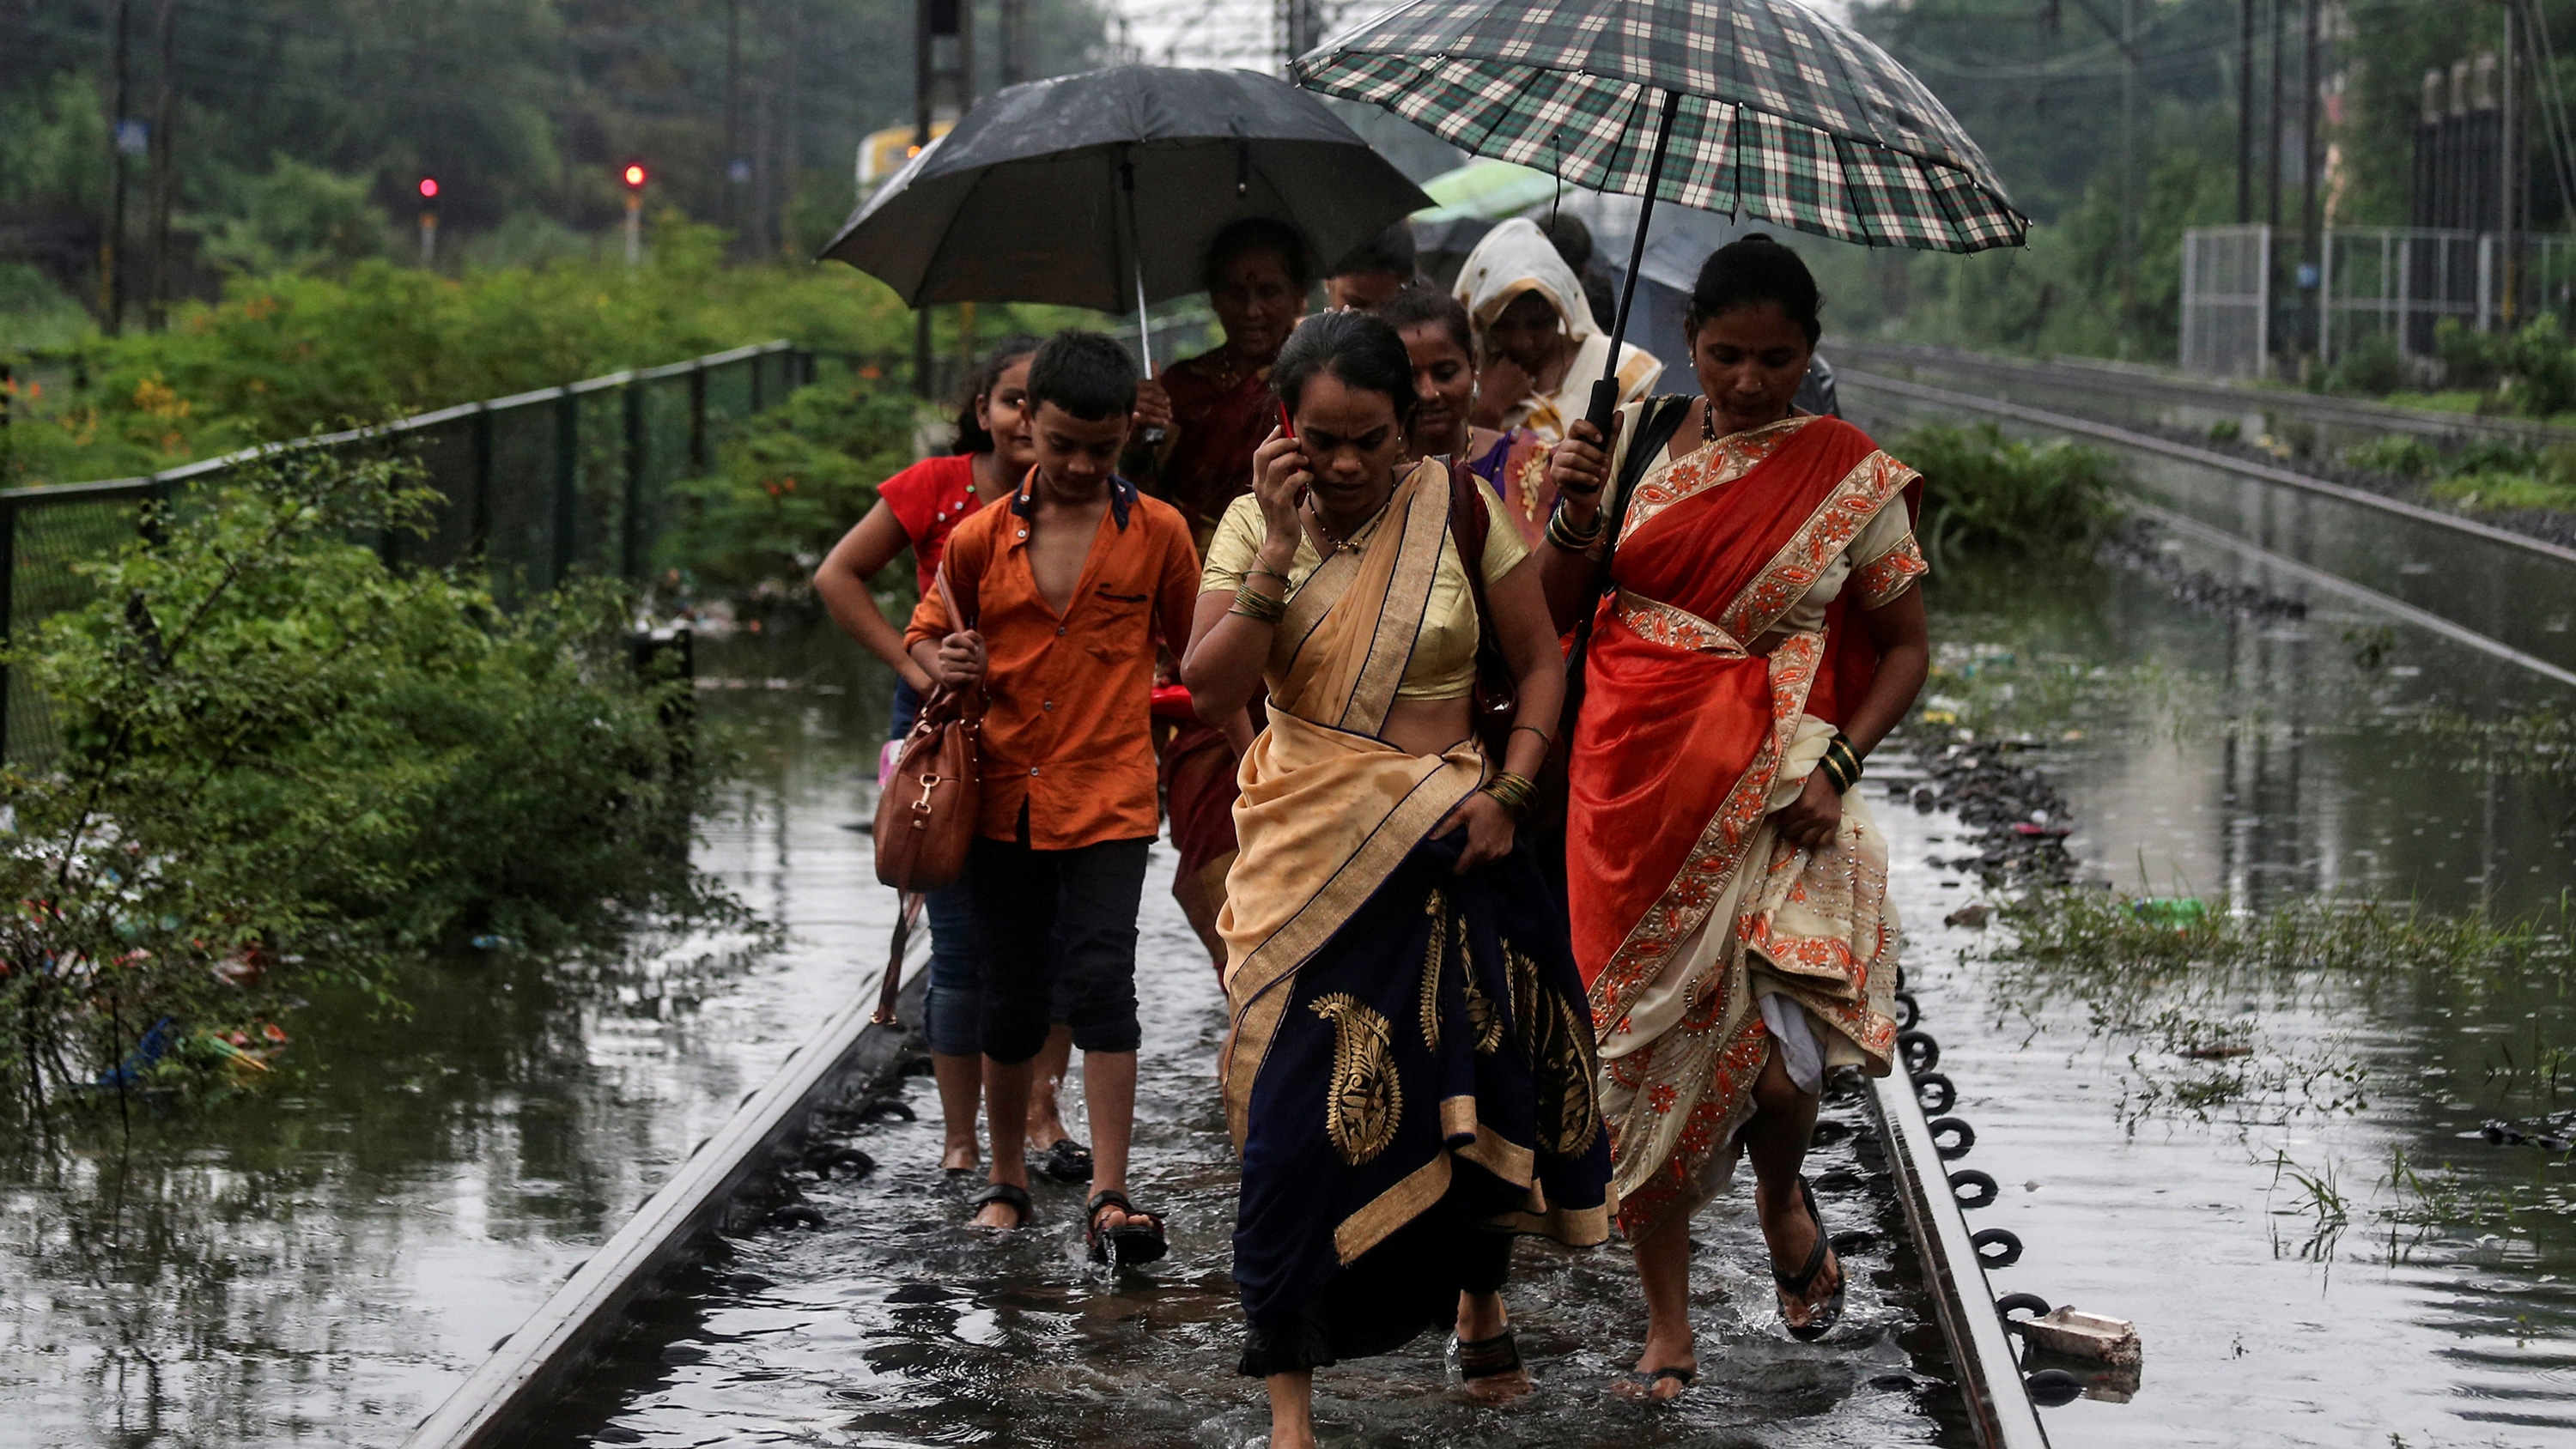 The image shows several people walking ankle-deep in water along railroad tracks as they hold several umbrellas over their heads in the rain.